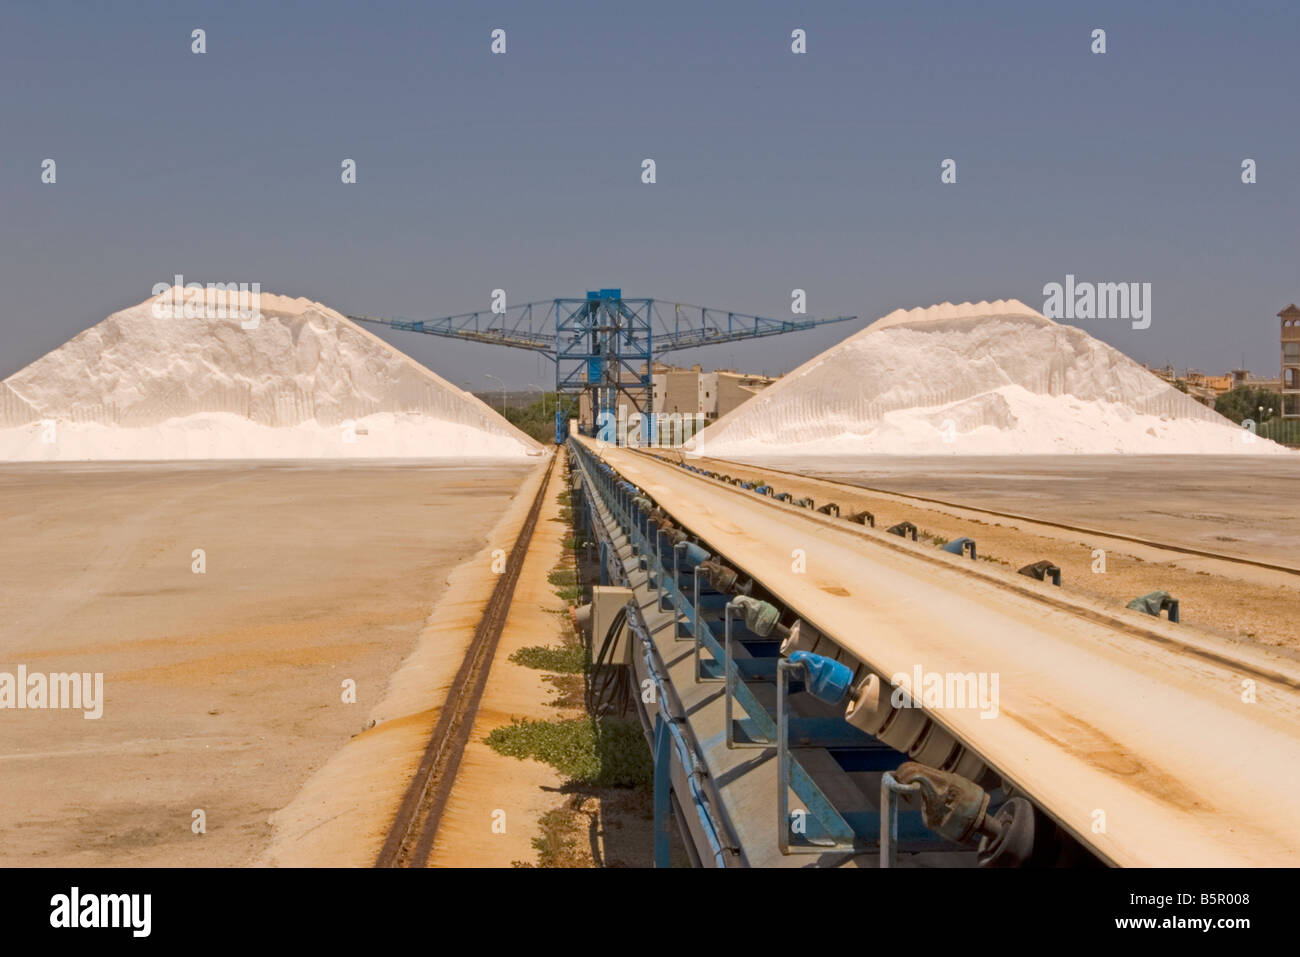 Conveyor Belt Salt Processing Plant Santa Pola Spain Spanish Industry - Stock Image